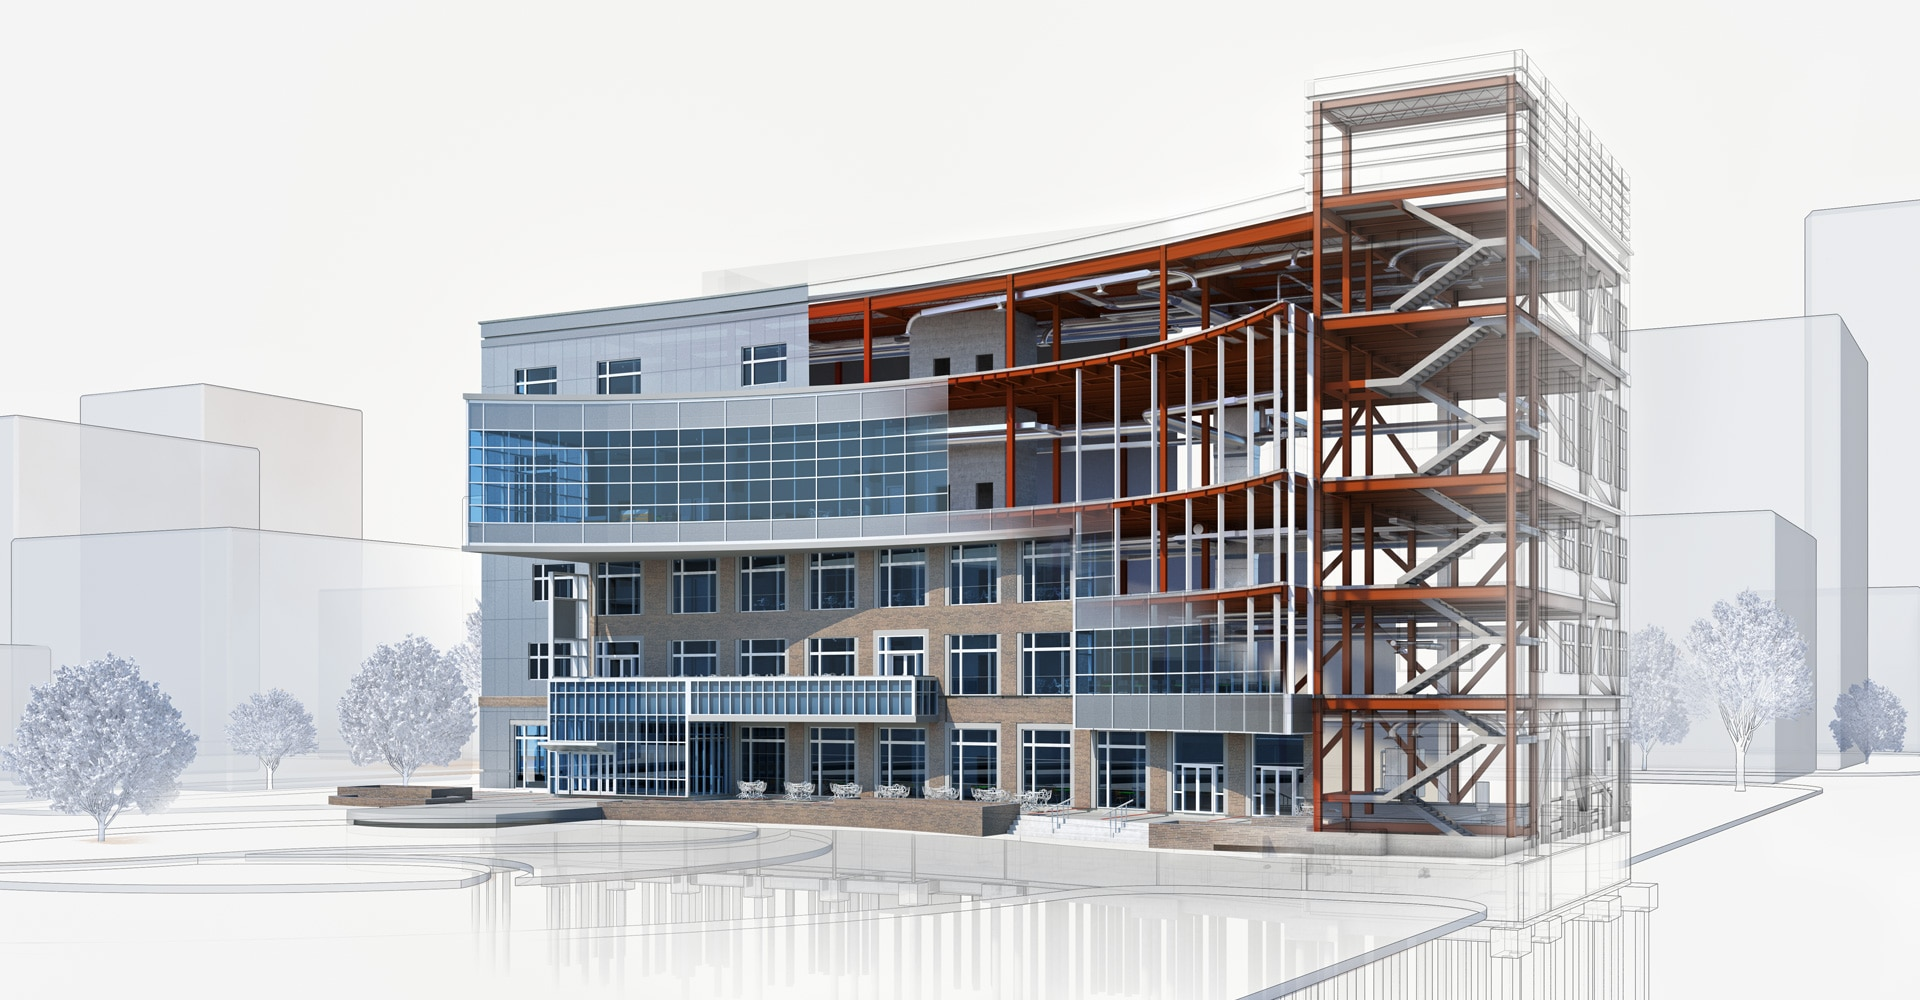 Bim software for mep engineering design autodesk better building systems publicscrutiny Images